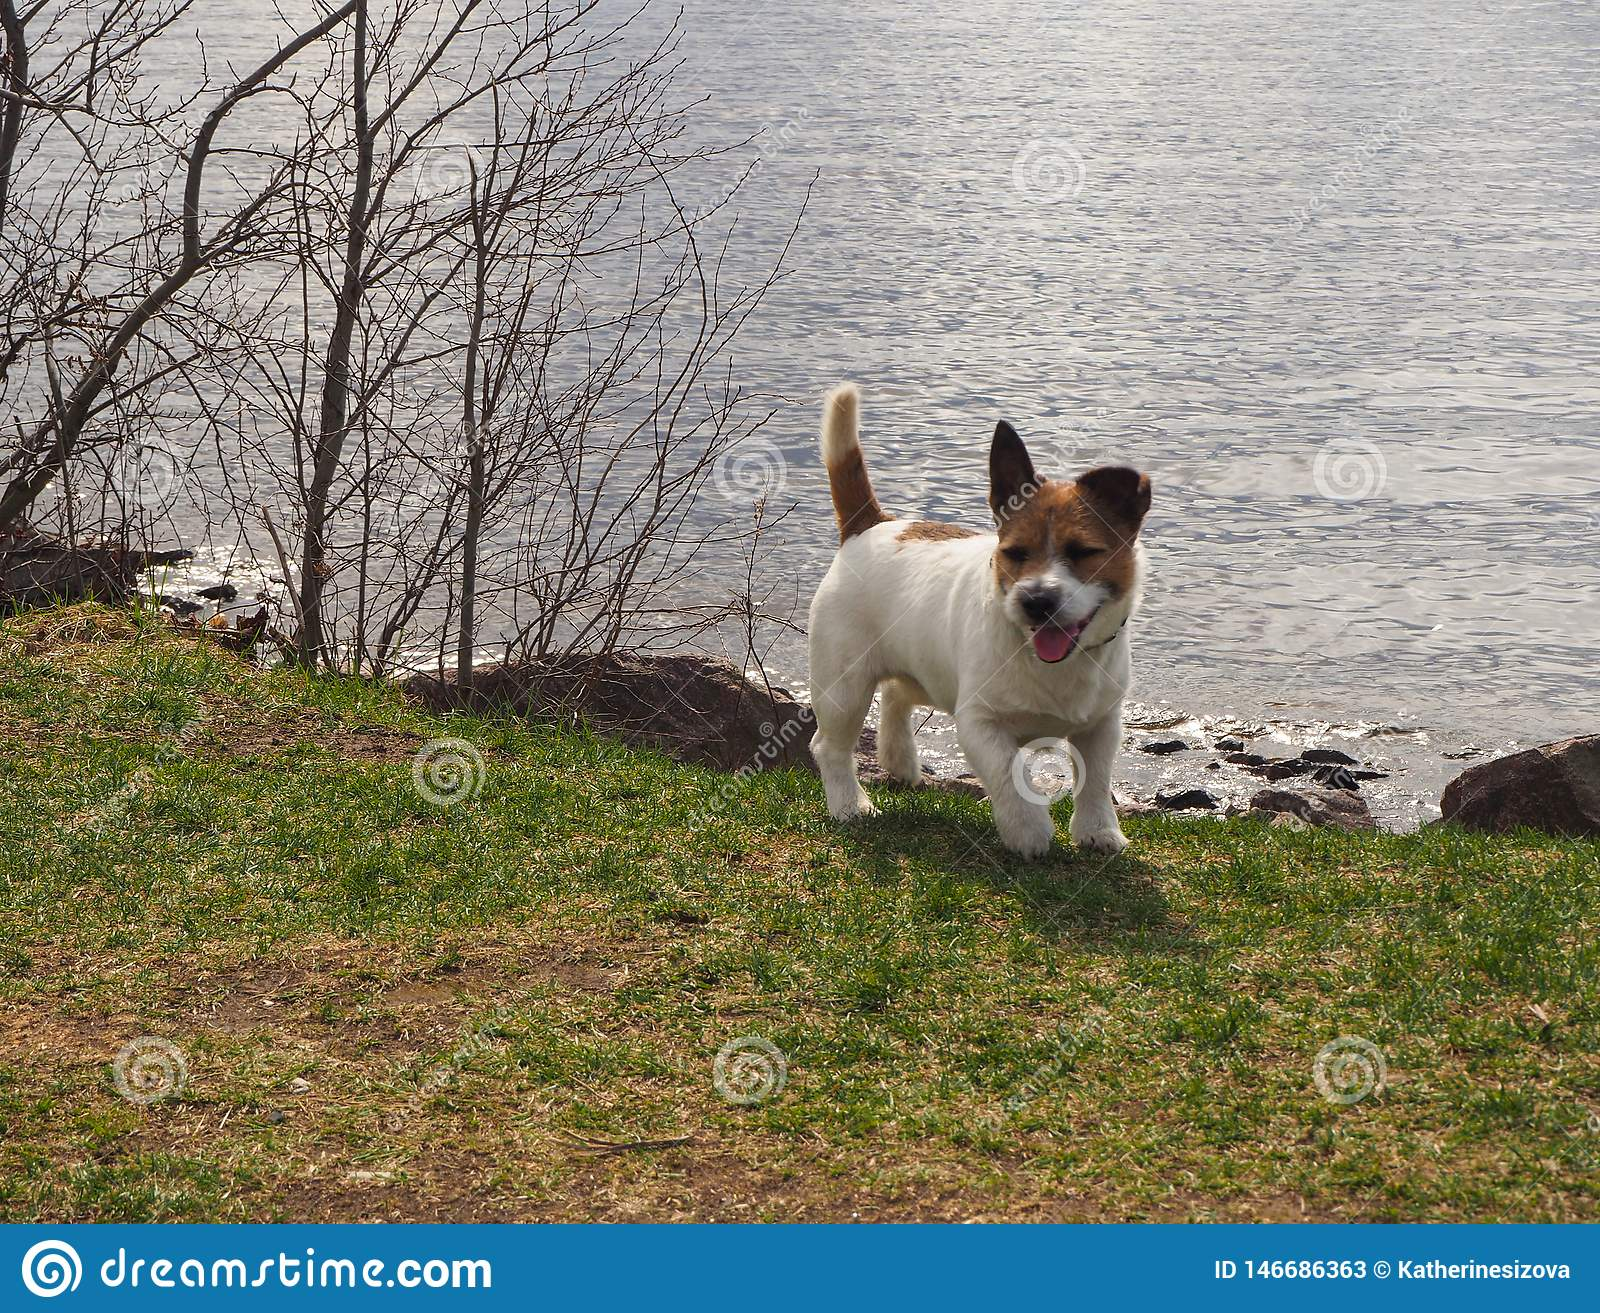 A little dog is standing on the shore with the sea background in soft focus